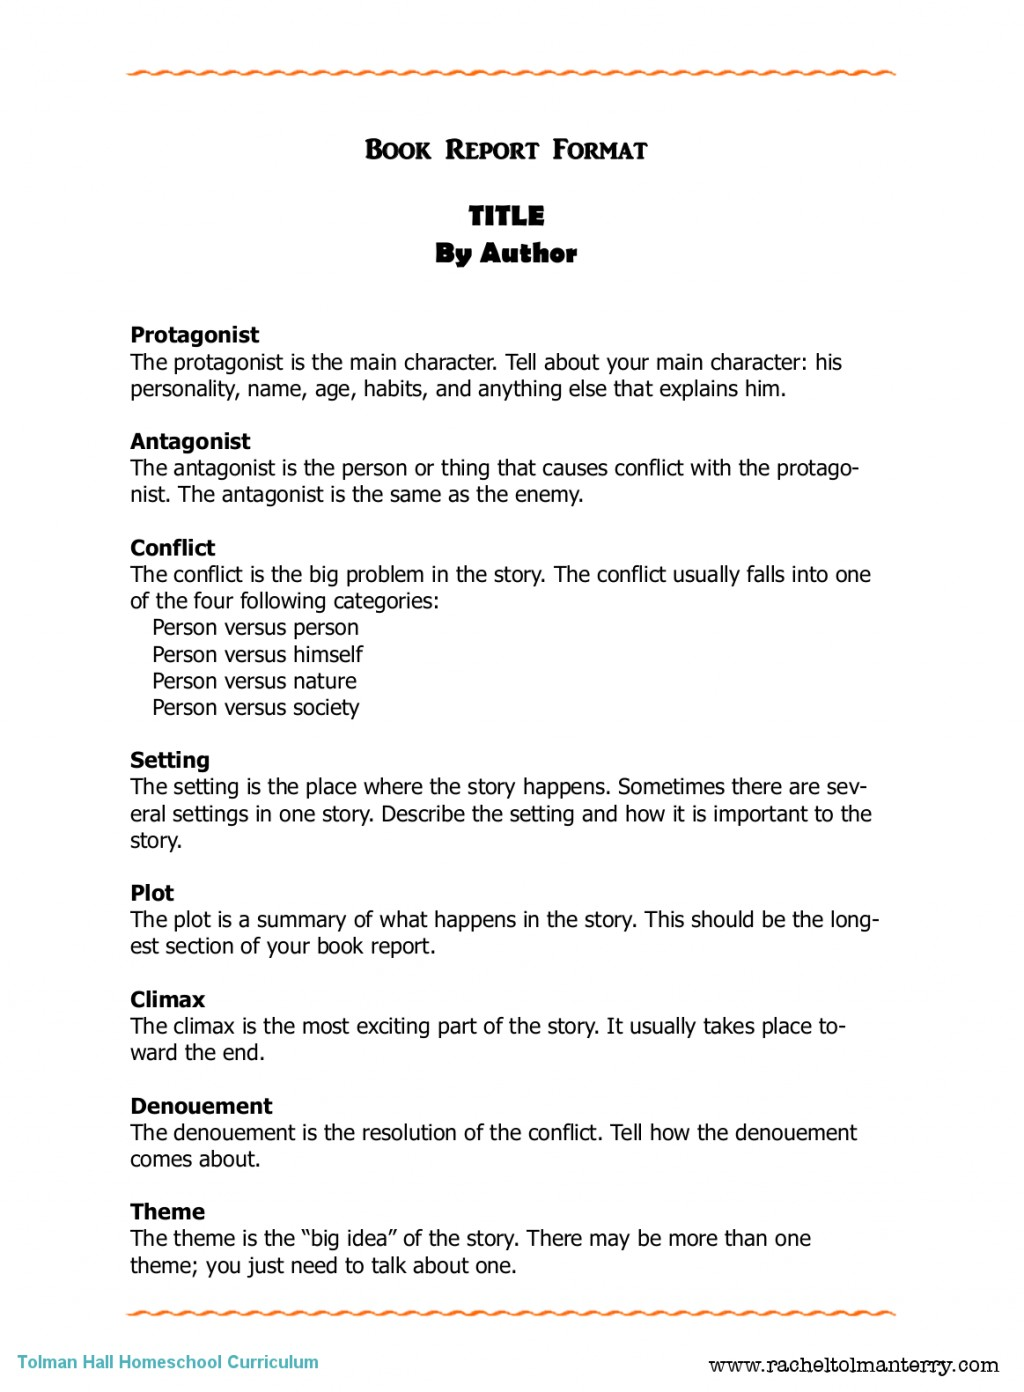 004 College Application Essay Examples Harvardale Supplement How To Write Good Bookreportformatpubl Nytimes Step By Admissions Best That Stands Out Outline Aboutourself Introduction Example Amazing Yale Prepscholar Guide Large